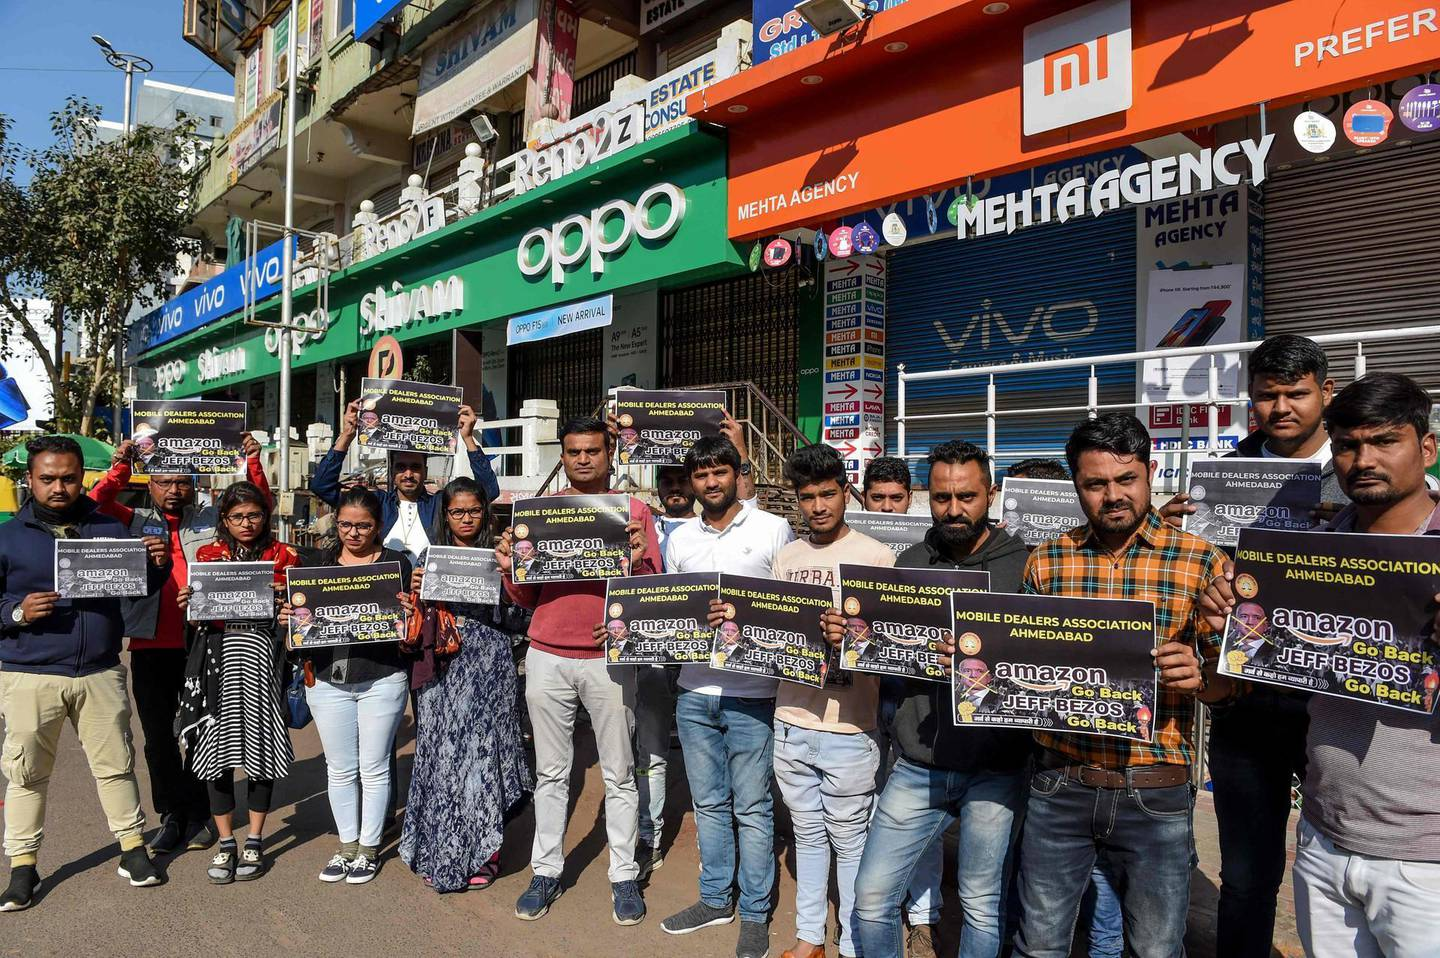 Mobile dealers and members of Ahmedabad Mobile Dealer's Association hold placards as they protest against online shopping platform Amazon outside their closed mobile shops in Ahmedabad on January 15, 2020. Amazon tycoon Jeff Bezos promised on January 15 a new billion-dollar investment in India, just two days after authorities launched an anti-trust investigation into the e-commerce giant.  / AFP / SAM PANTHAKY